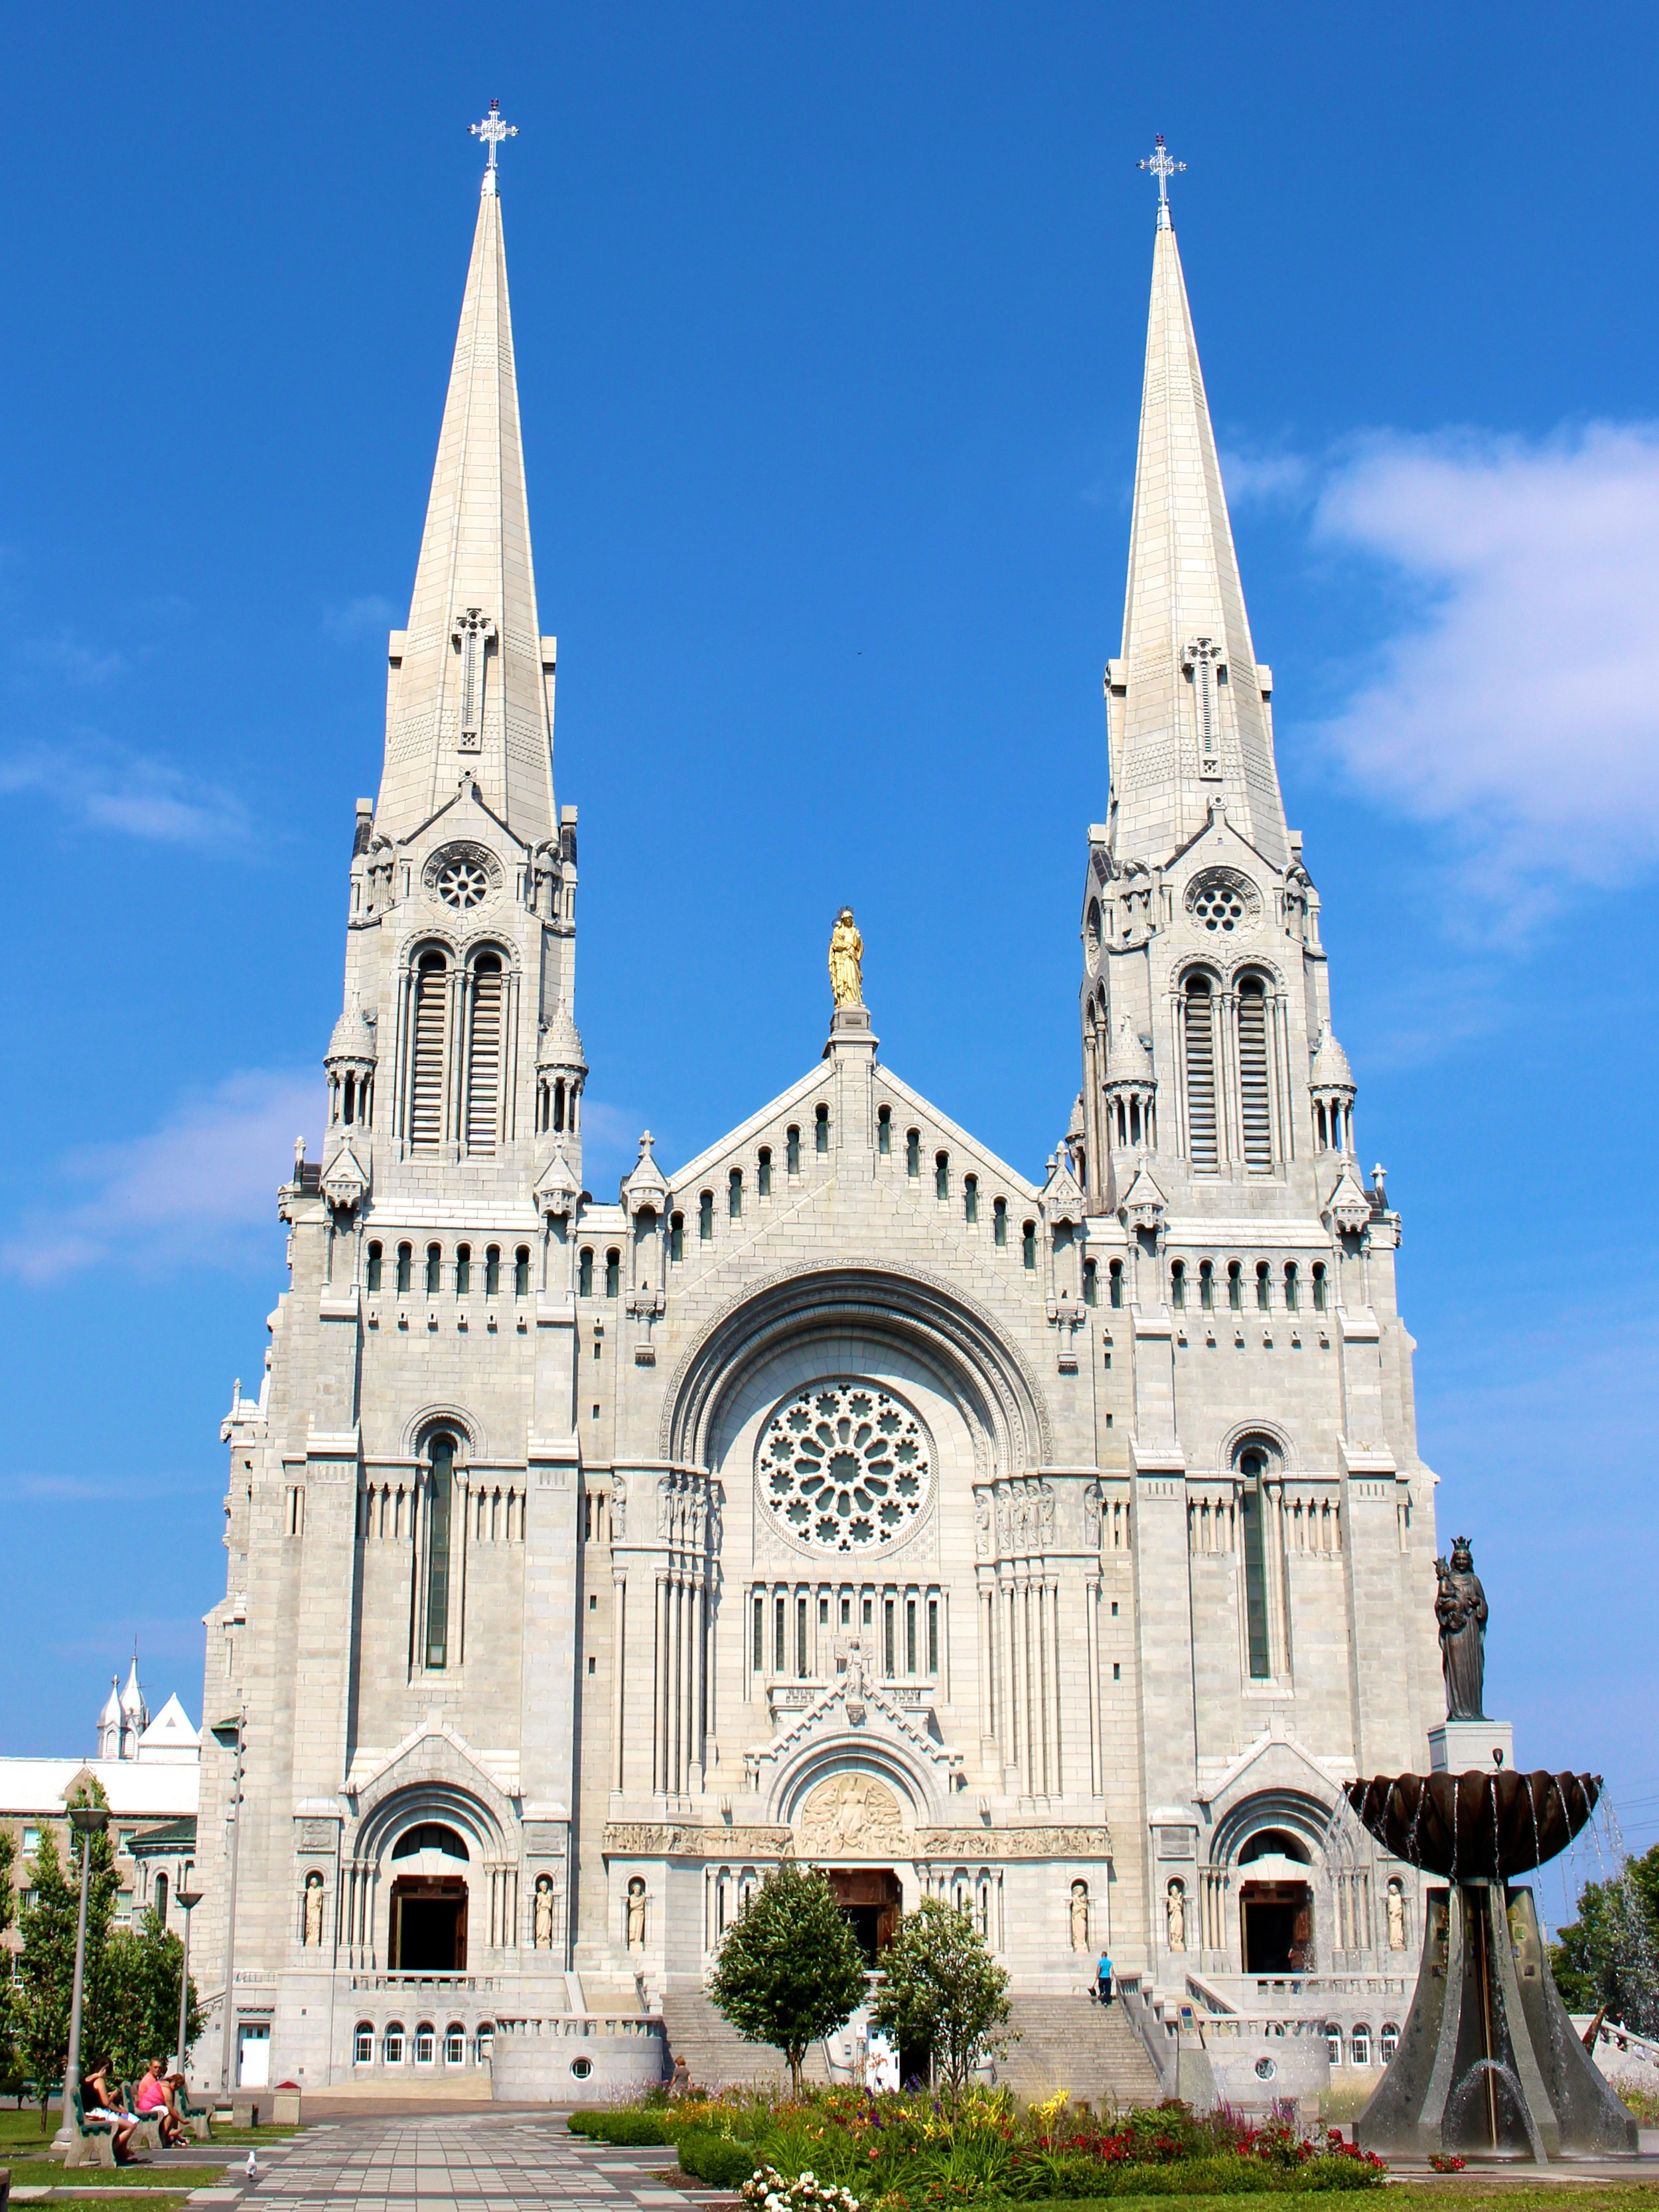 Basilica_of_Sainte-Anne-de-Beaupre_in_Sainte-Anne-de-Beaupre,_Quebec,_Canada.jpg